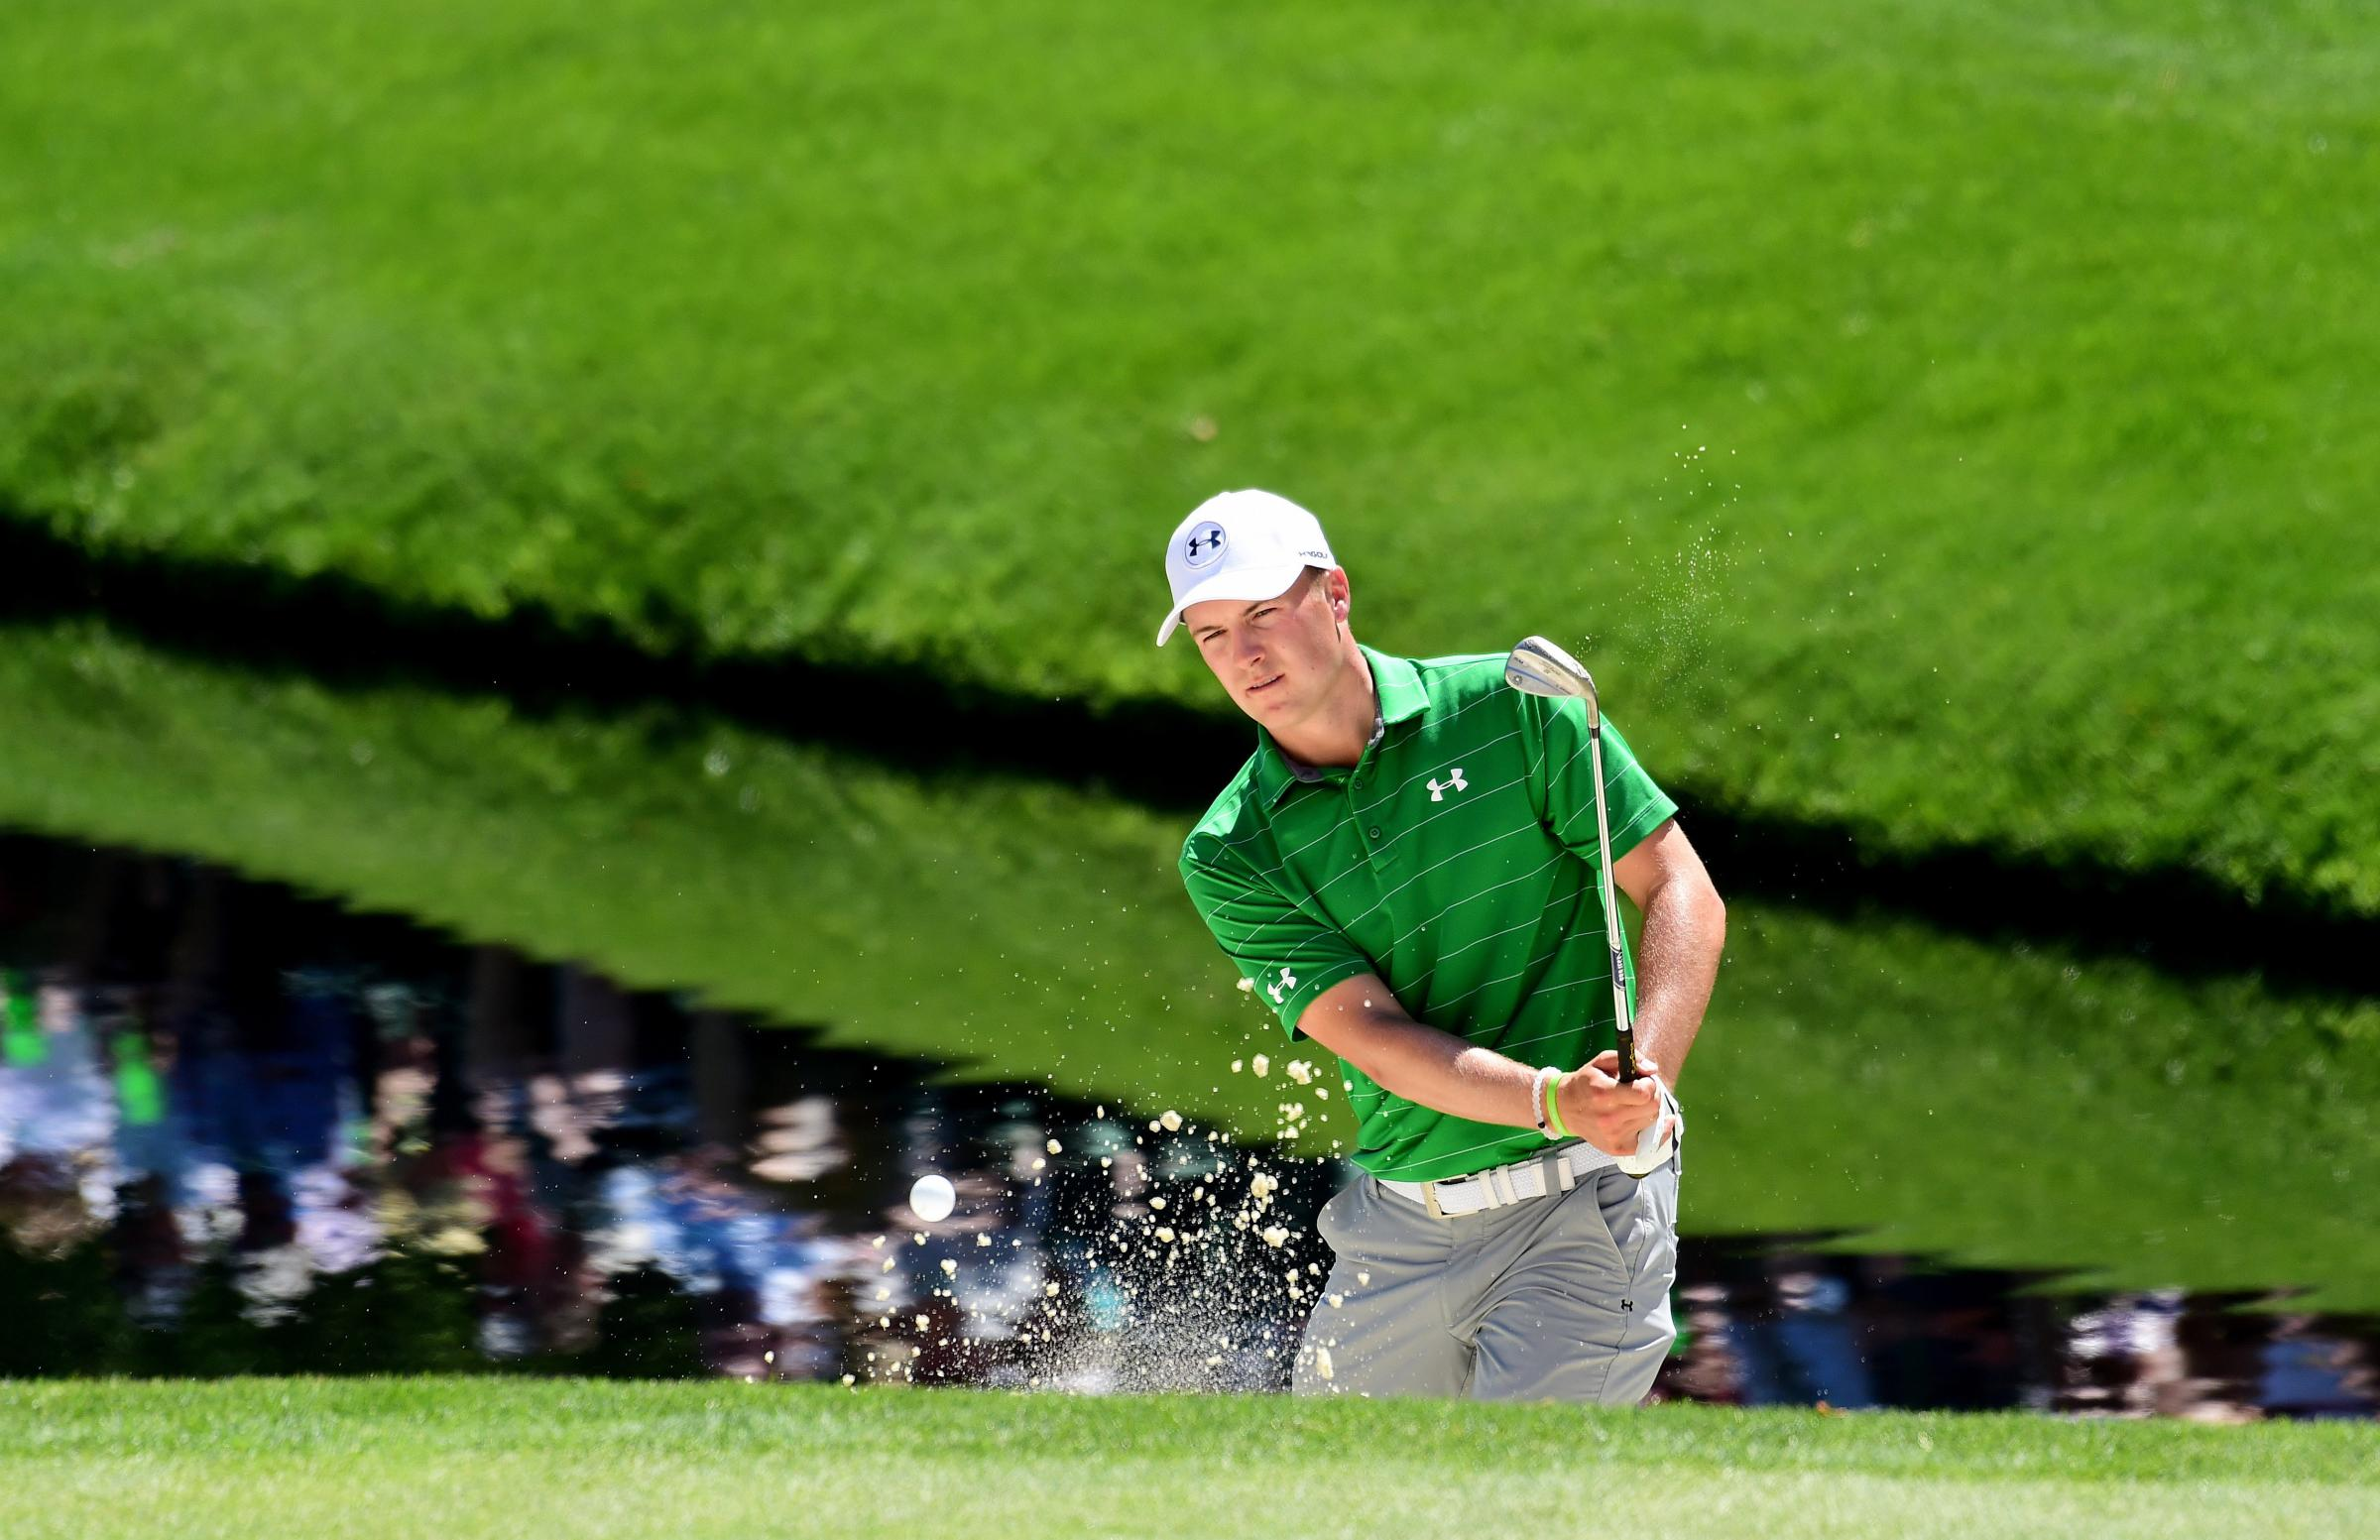 Bunker mentality: Jordan Spieth is keen to make up for last year's Masters woe (Picture: Getty Images)